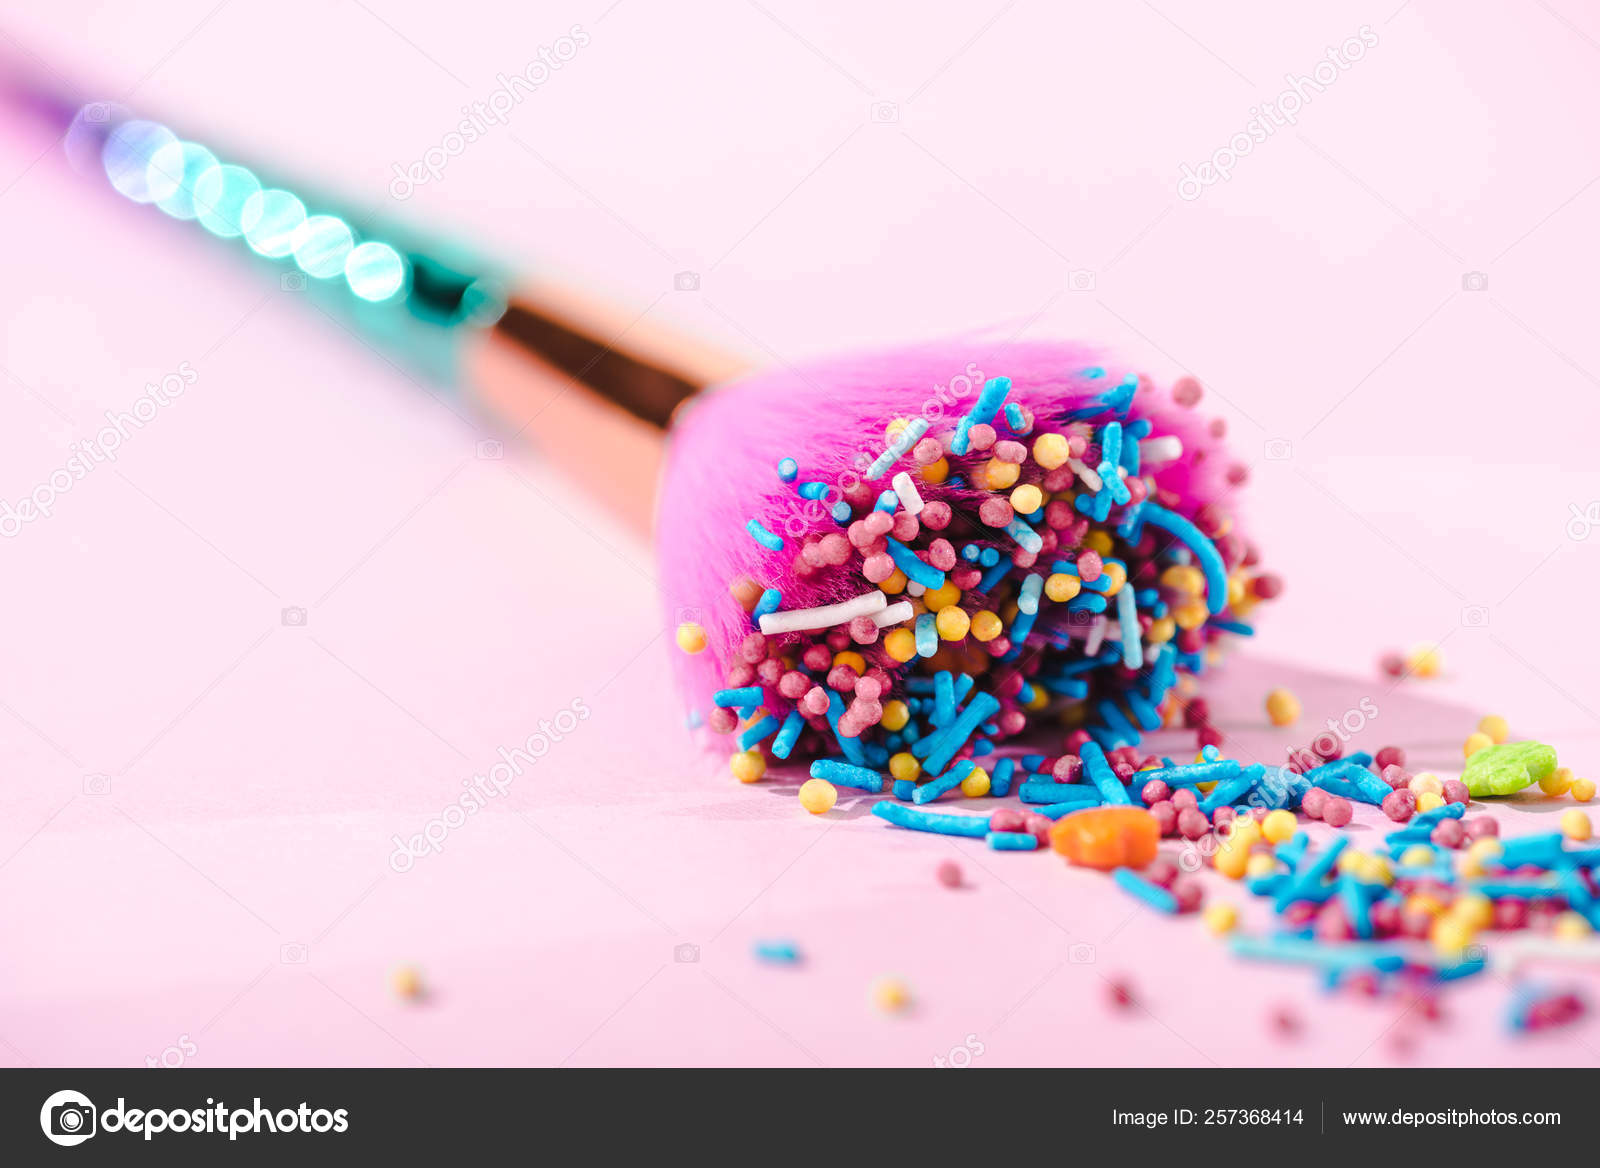 Close View Makeup Brush Covered Colorful Sprinkles Pink